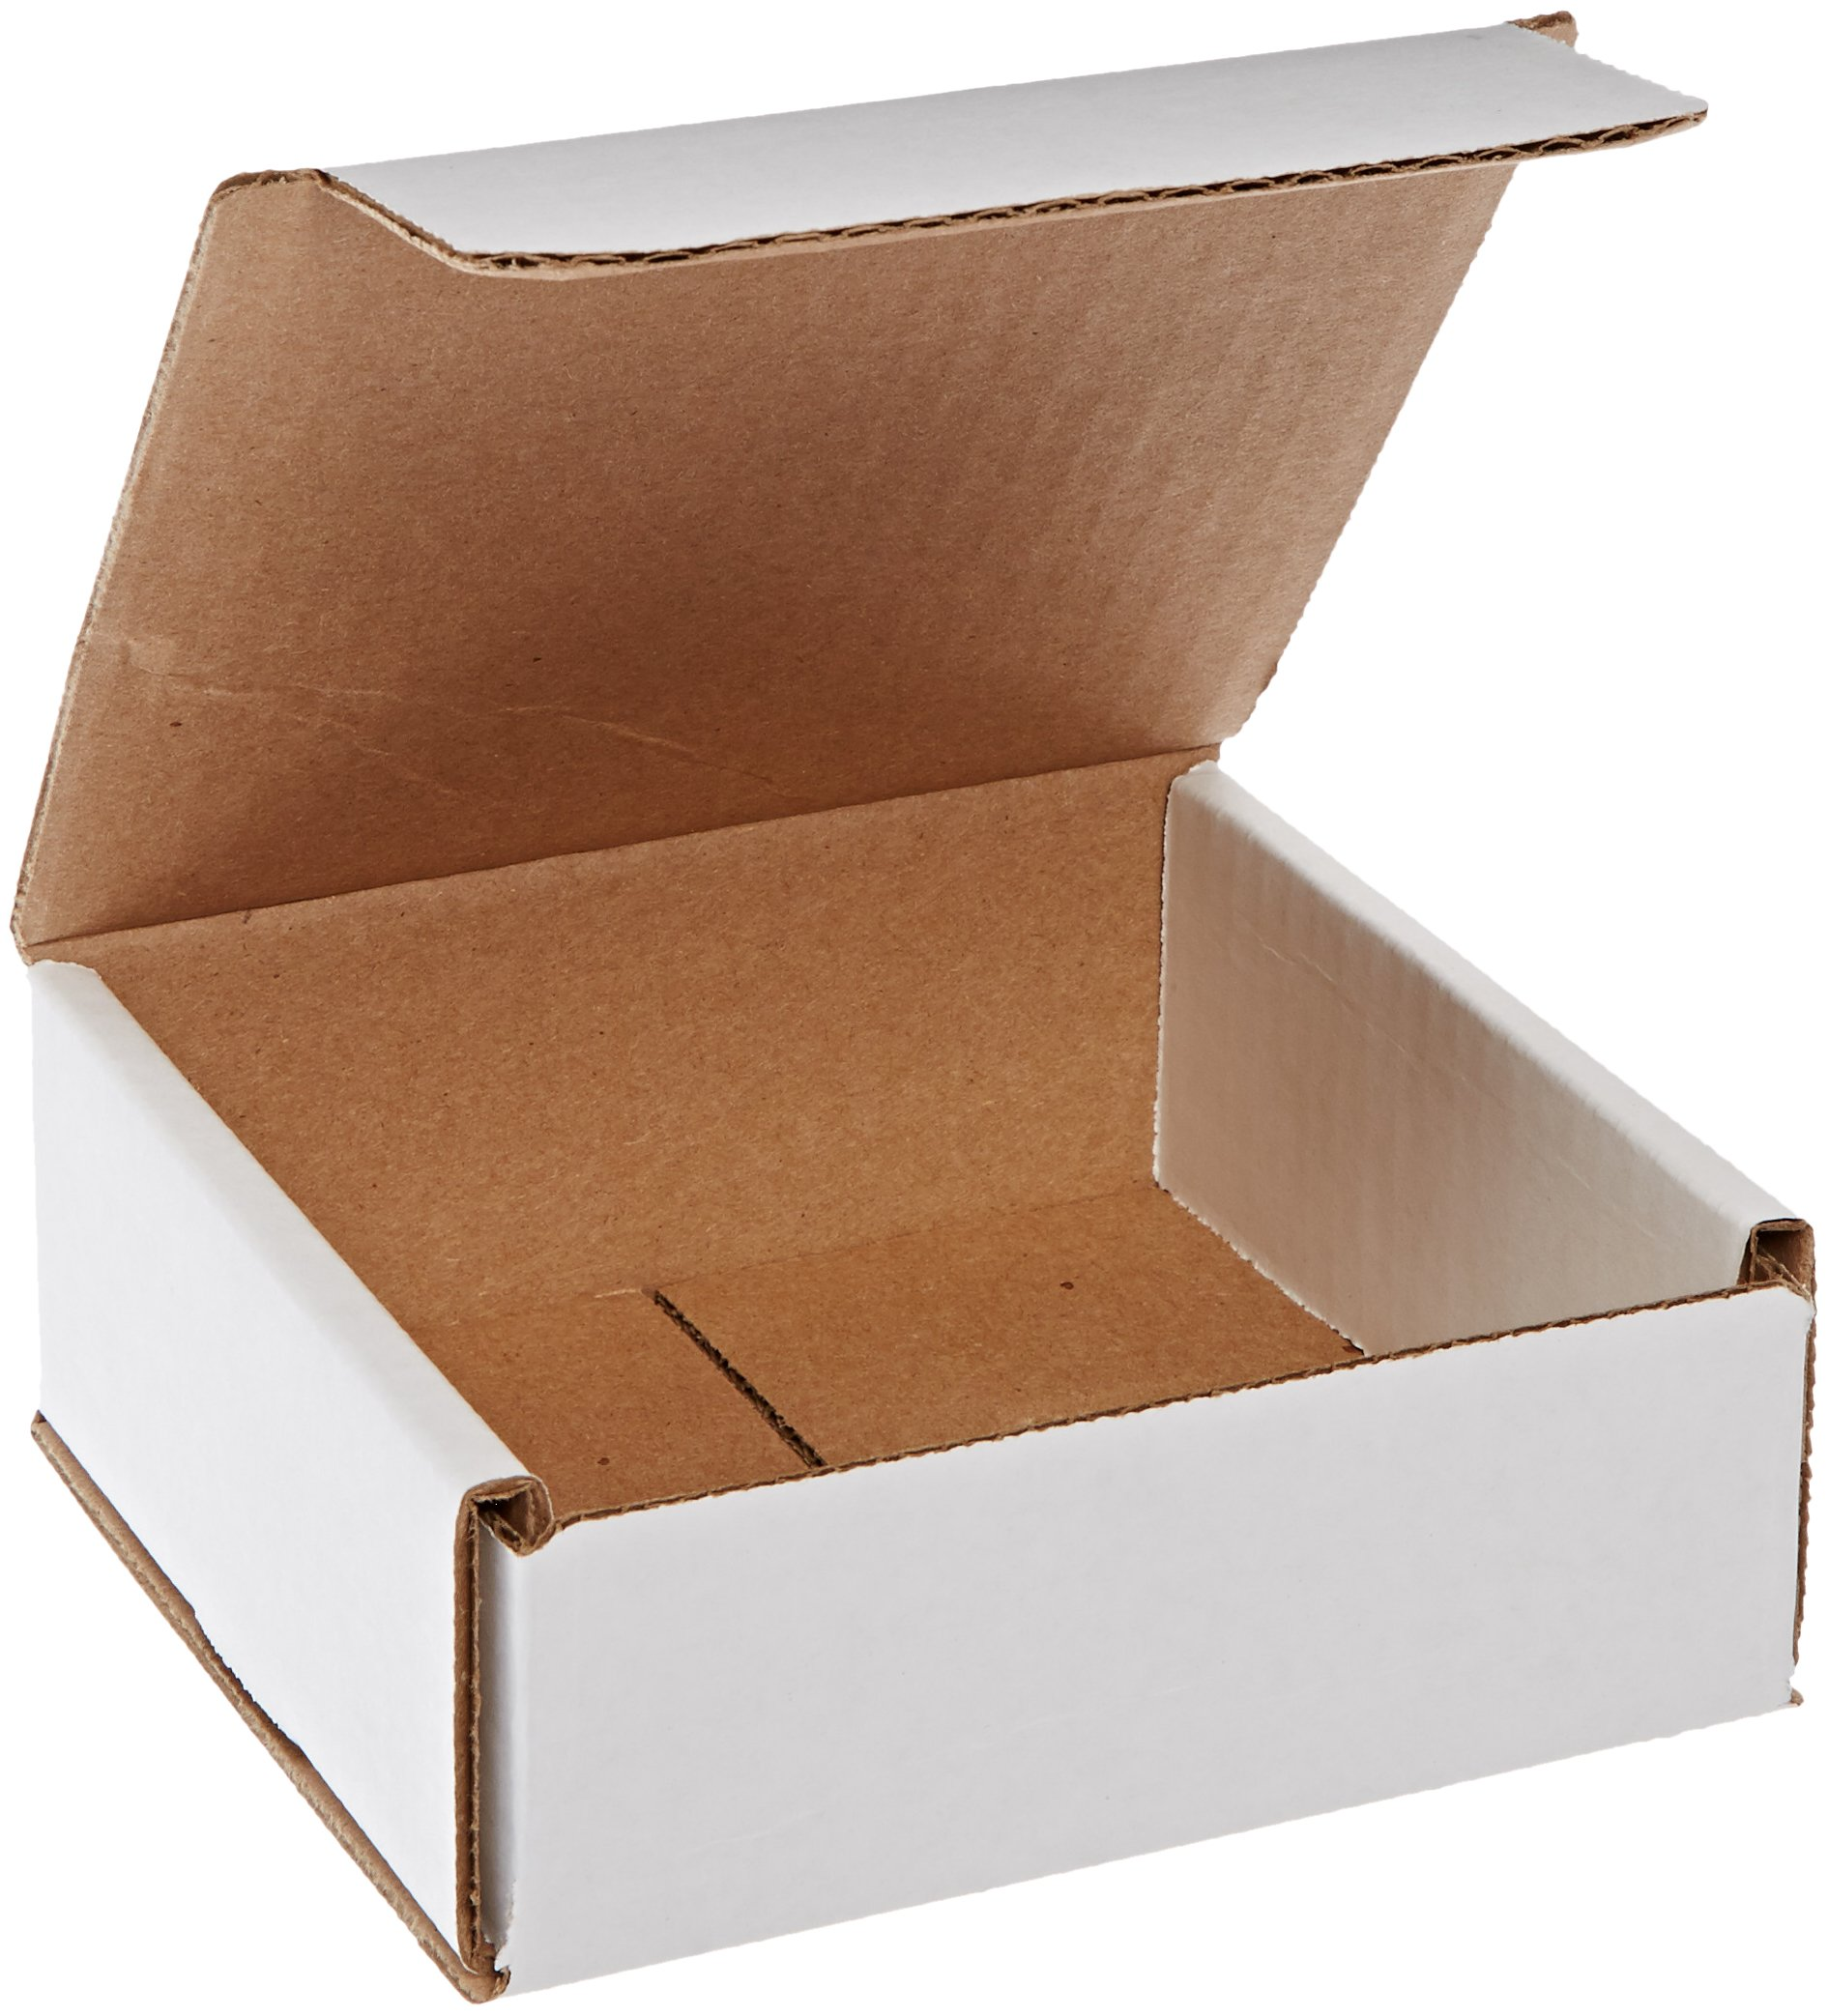 Elevate The Sales of Your Business Through Cardboard Mailer Boxes